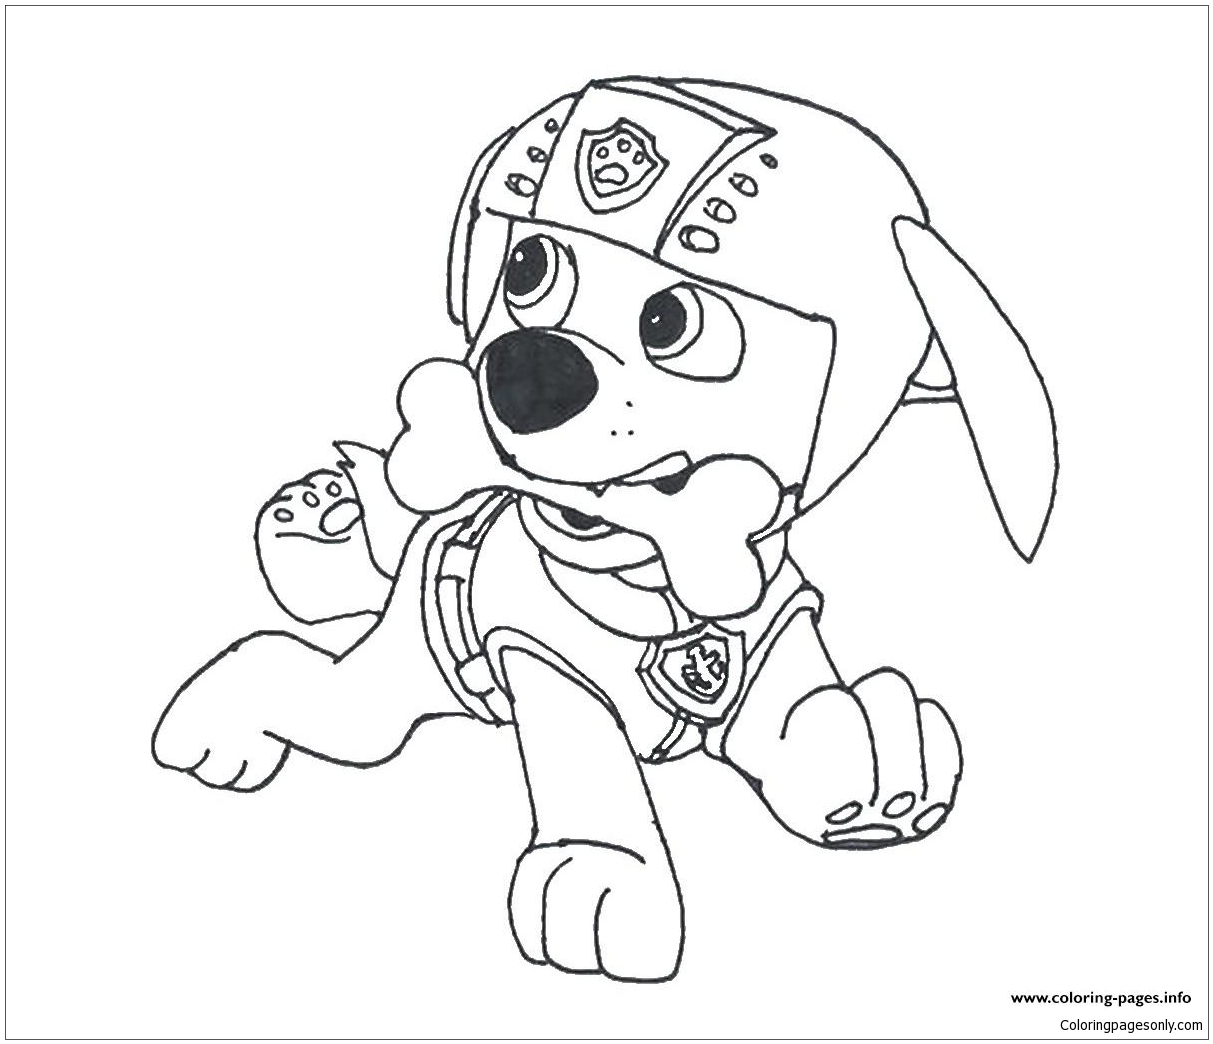 Paw Patrol Zuma With A Bone Coloring Page - Free Coloring Pages Online